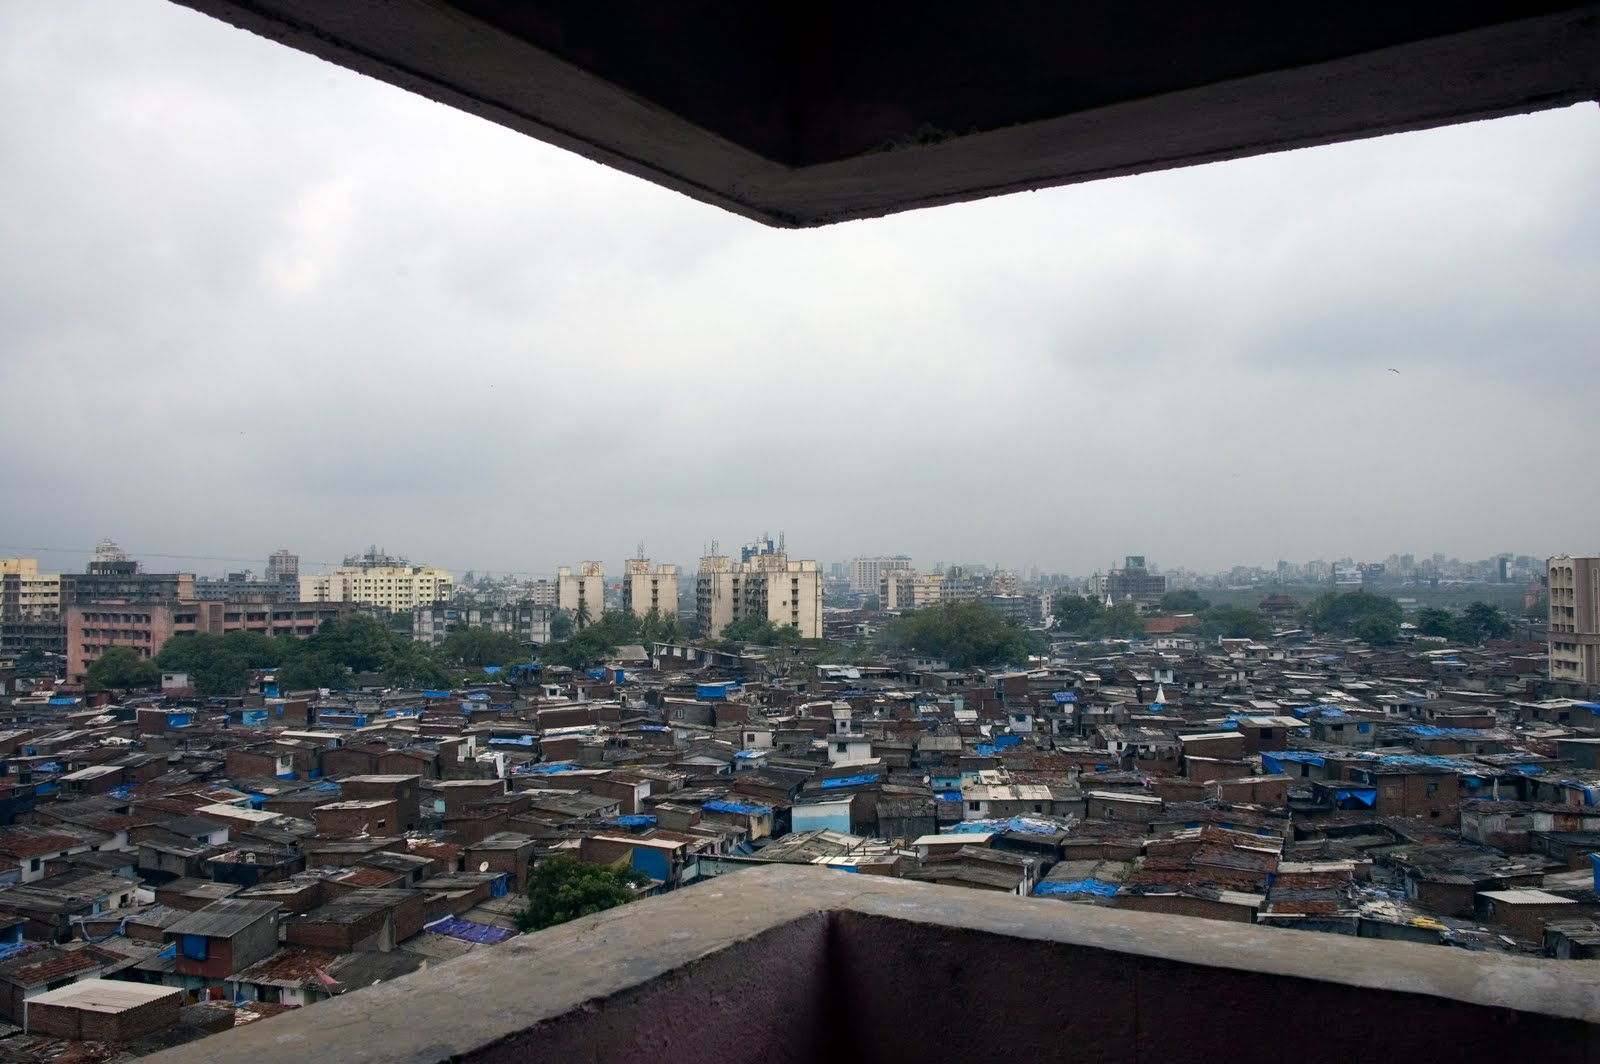 essay on slums unicef photo essay my life in an urban slum